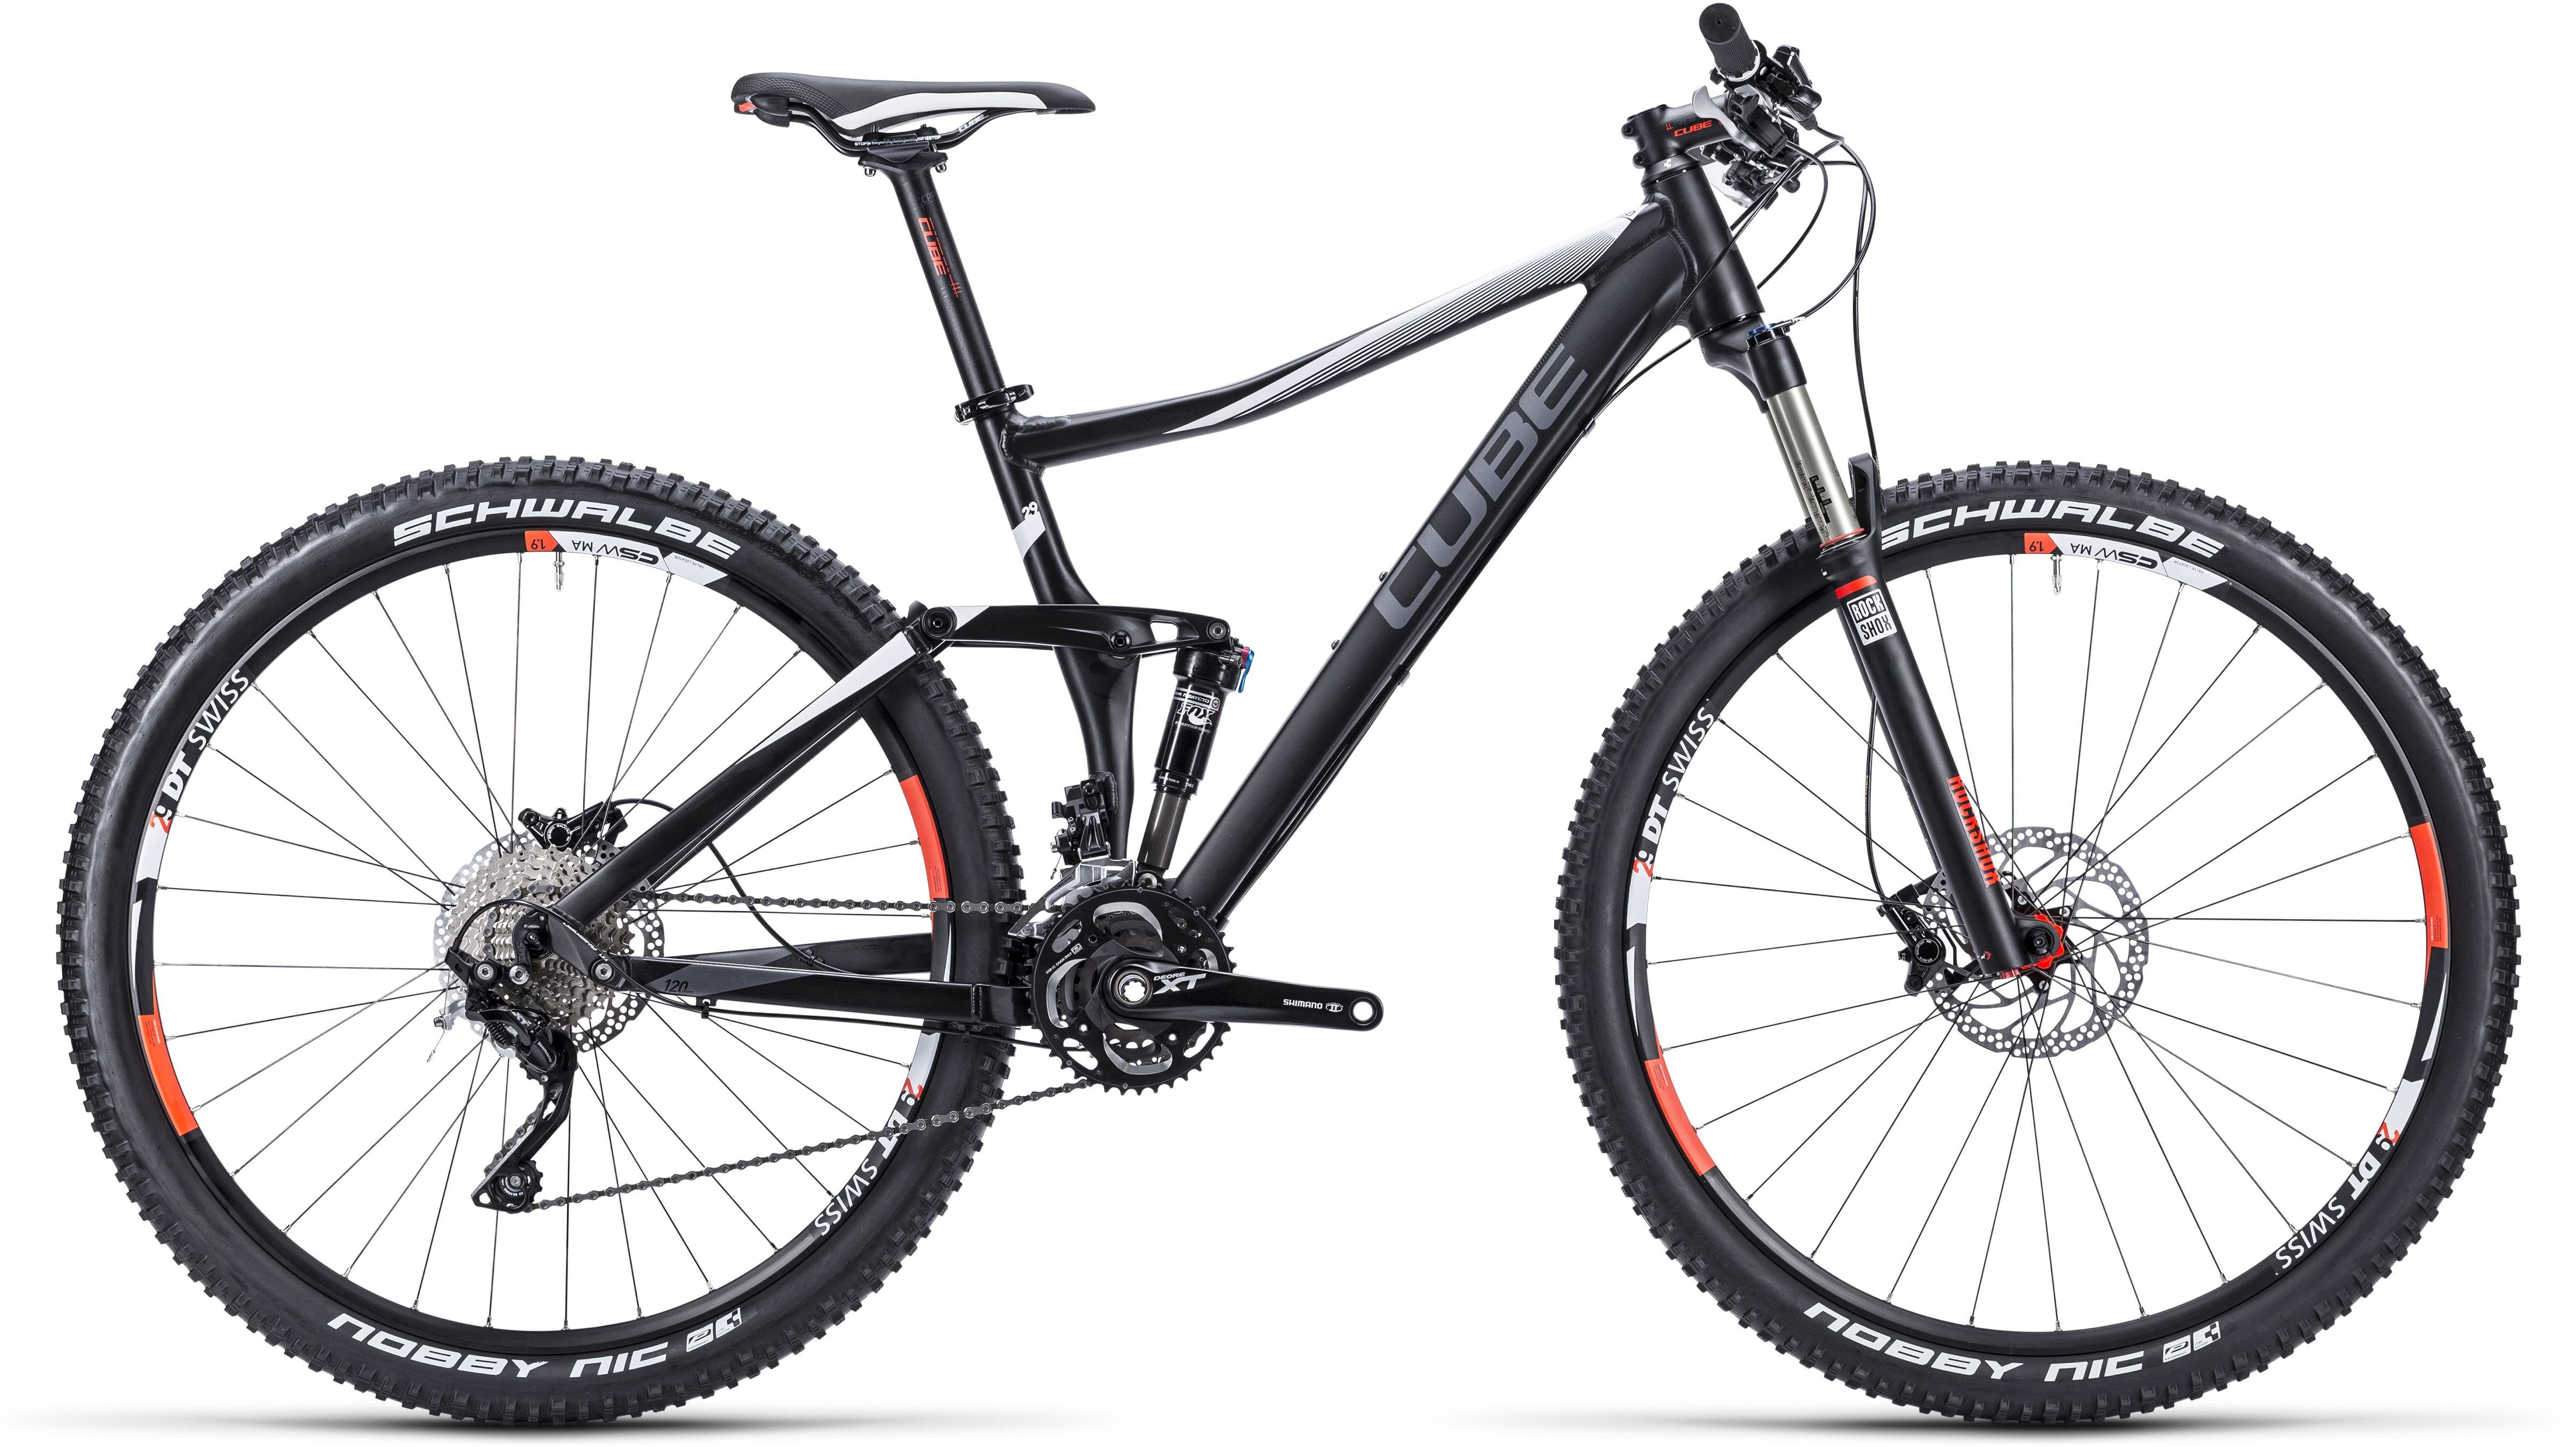 cube stereo 120 hpa pro 29 2015 review the bike list. Black Bedroom Furniture Sets. Home Design Ideas